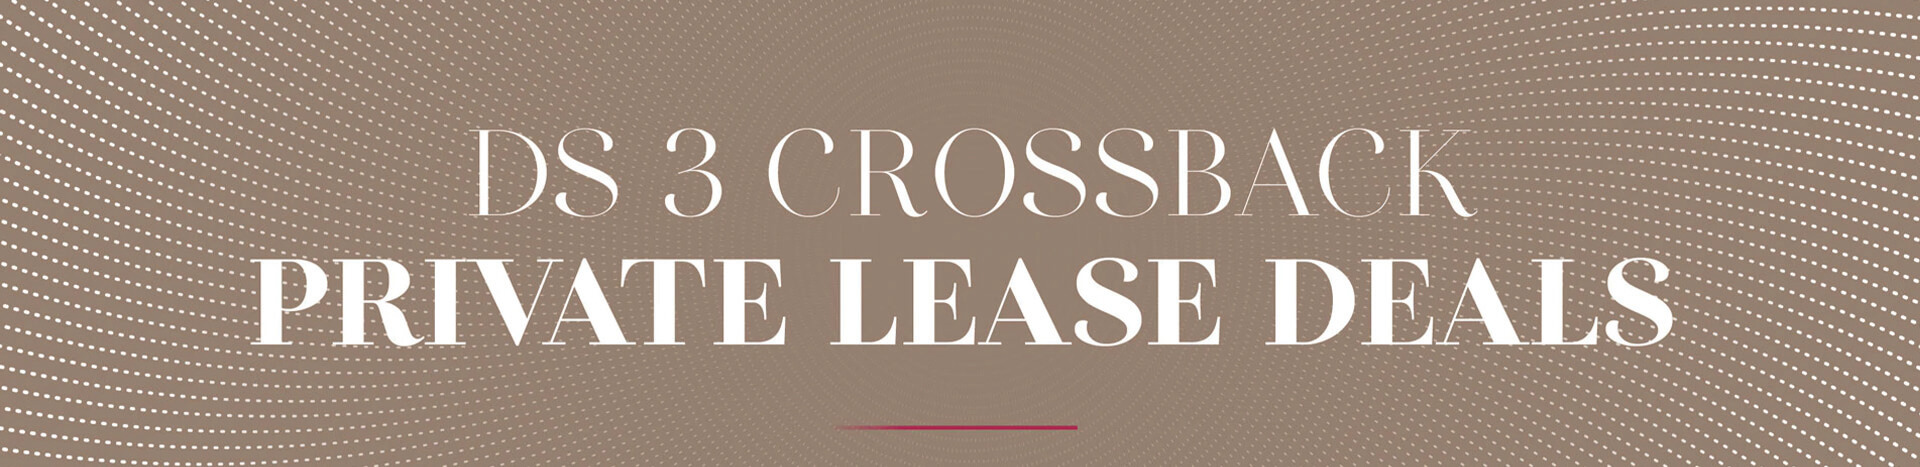 DS 3 Crossback Private Lease Deals